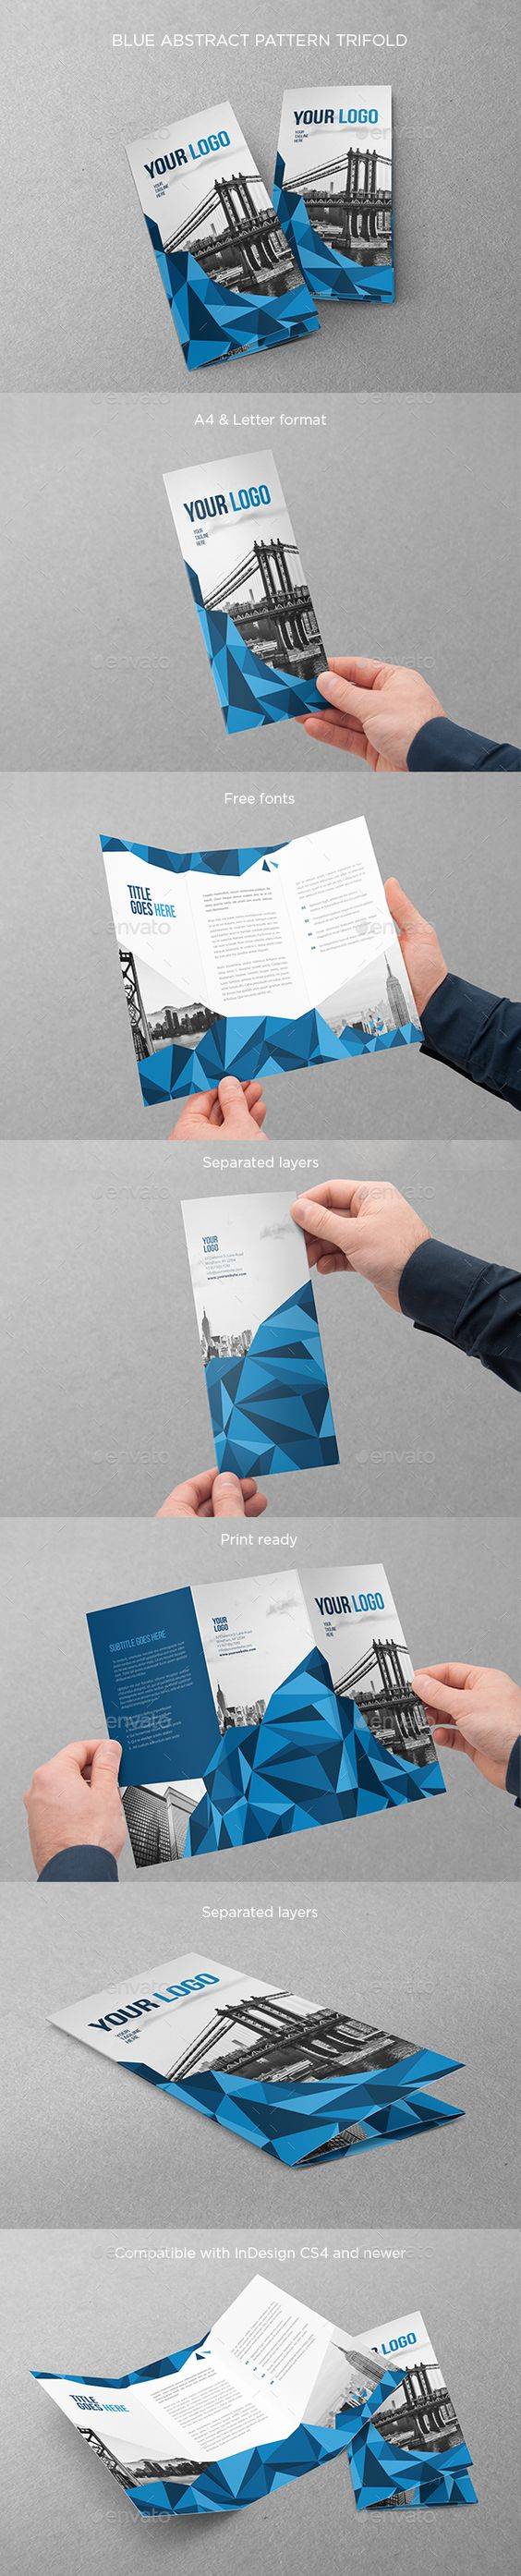 Blue Abstract Pattern Trifold - Brochures Print Templates